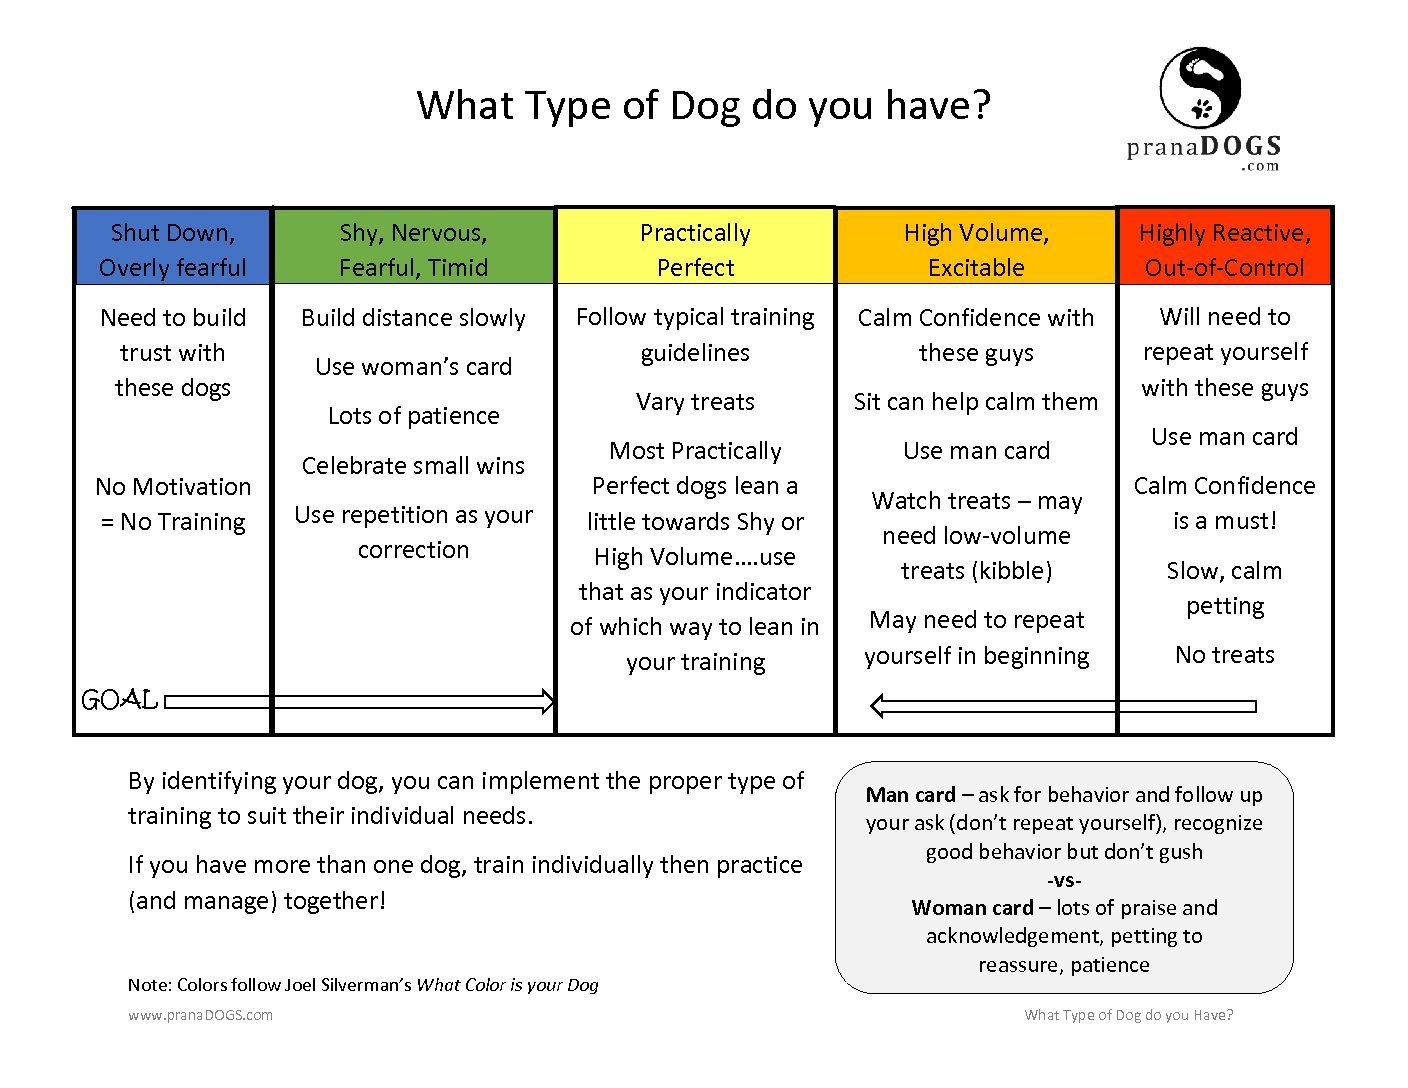 What type of dog do you have?